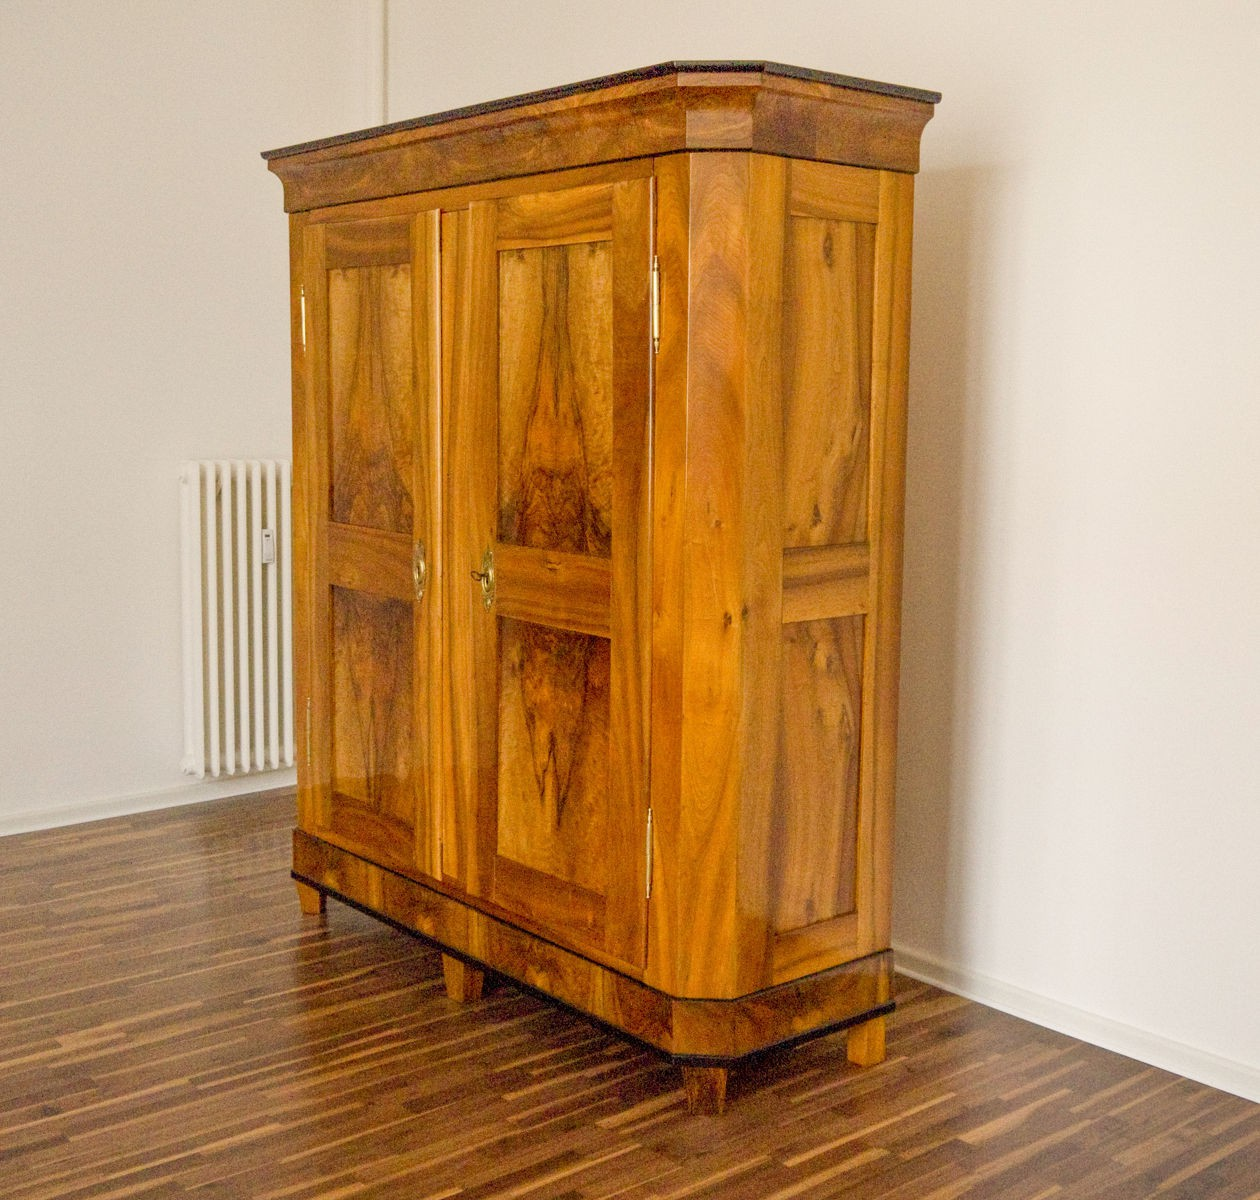 moebelrestauration biedermeier schrank tischlerei schneider. Black Bedroom Furniture Sets. Home Design Ideas